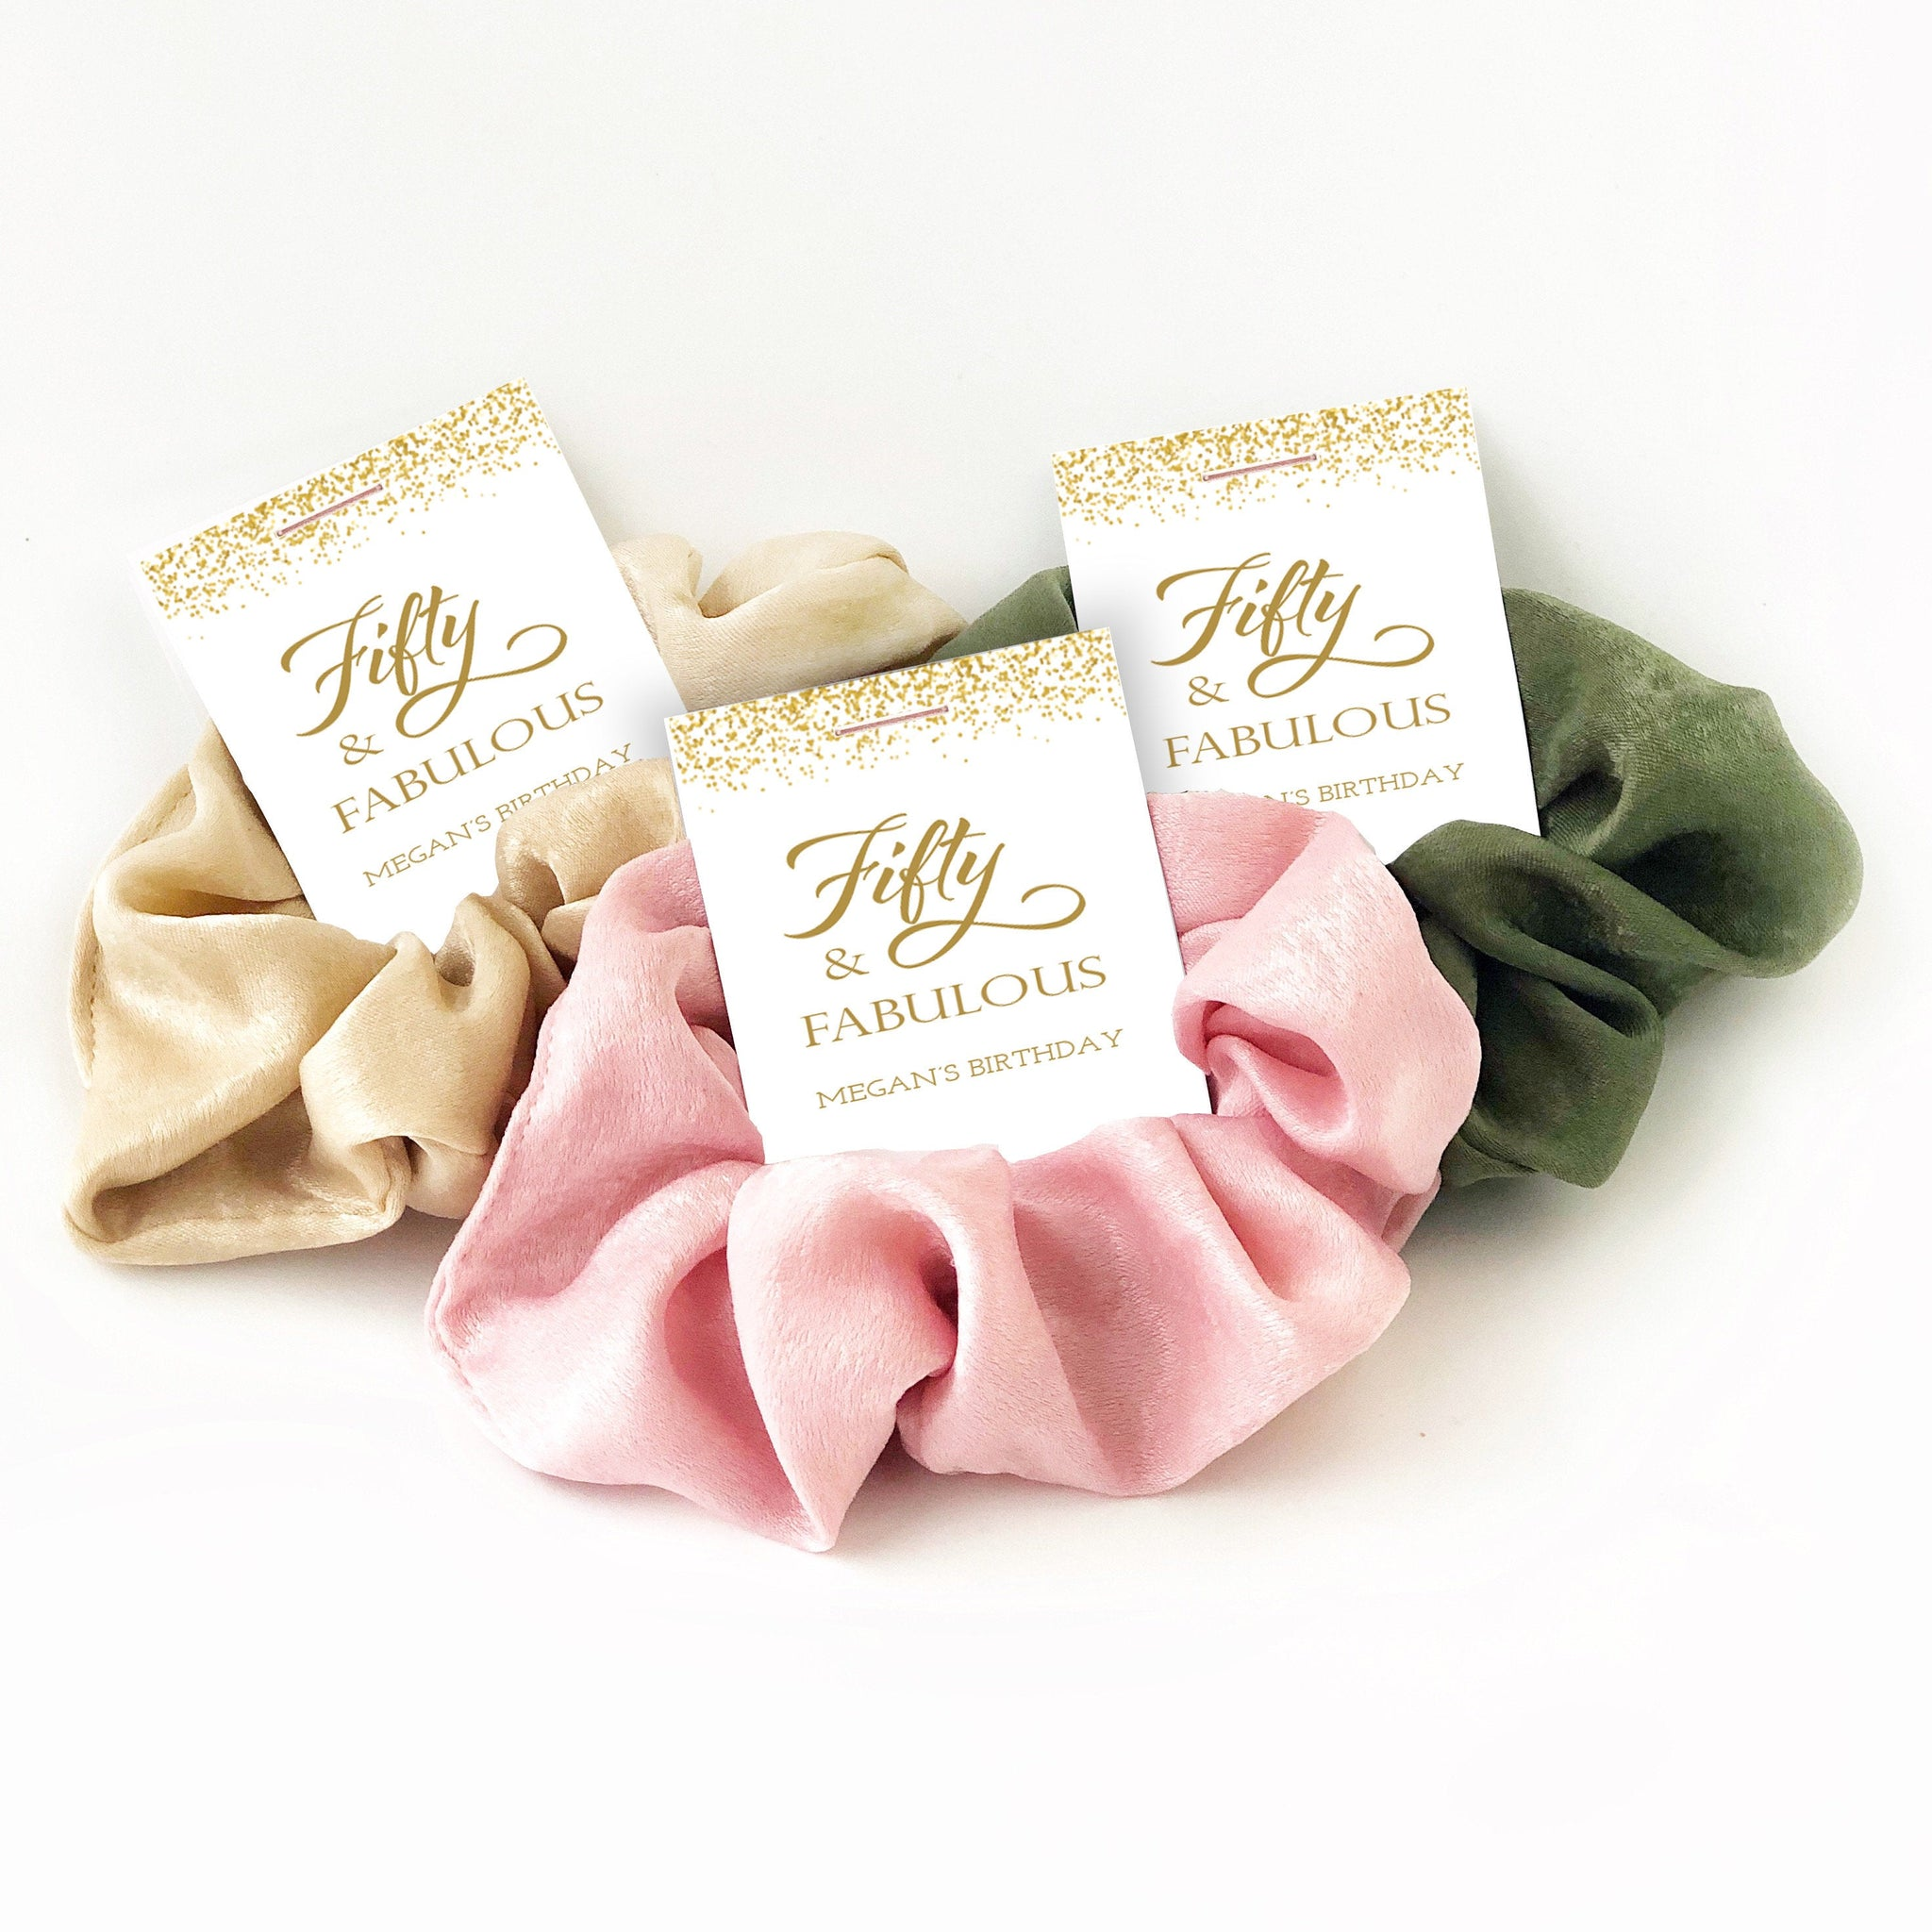 50 and Fabulous, 50th Birthday Party Favors for Women, Hair Scrunchies